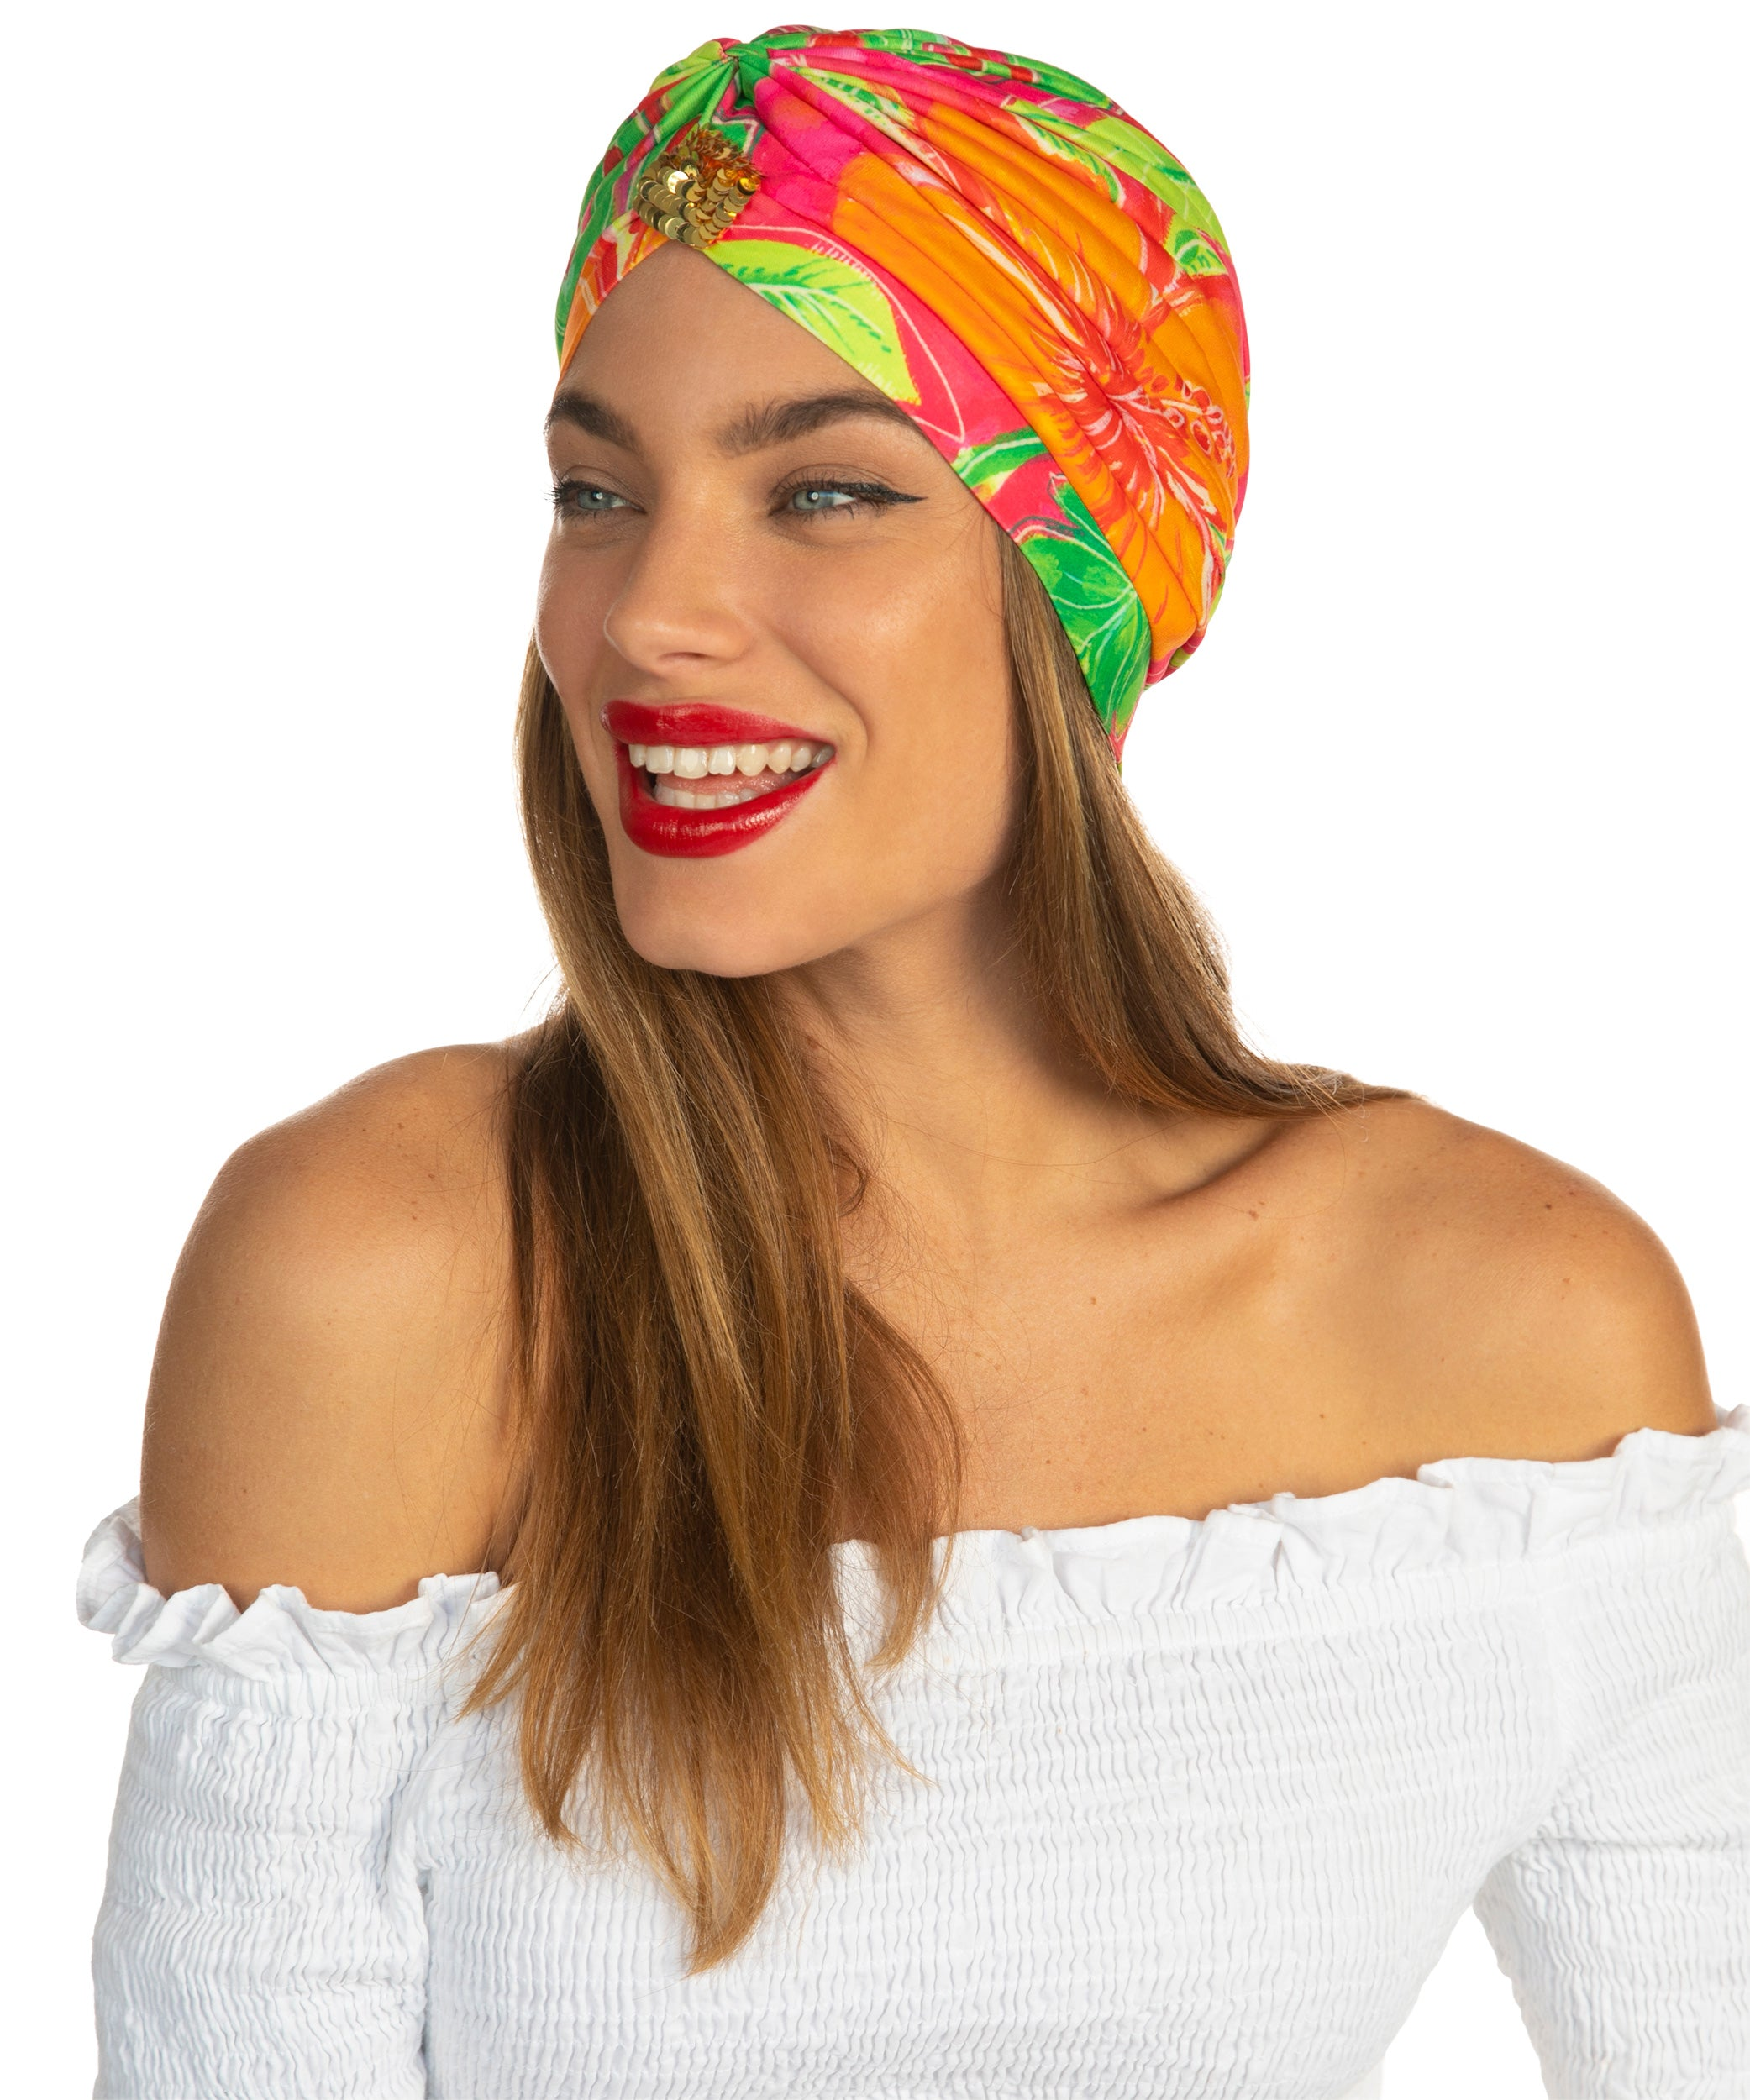 The Carnivale Turban